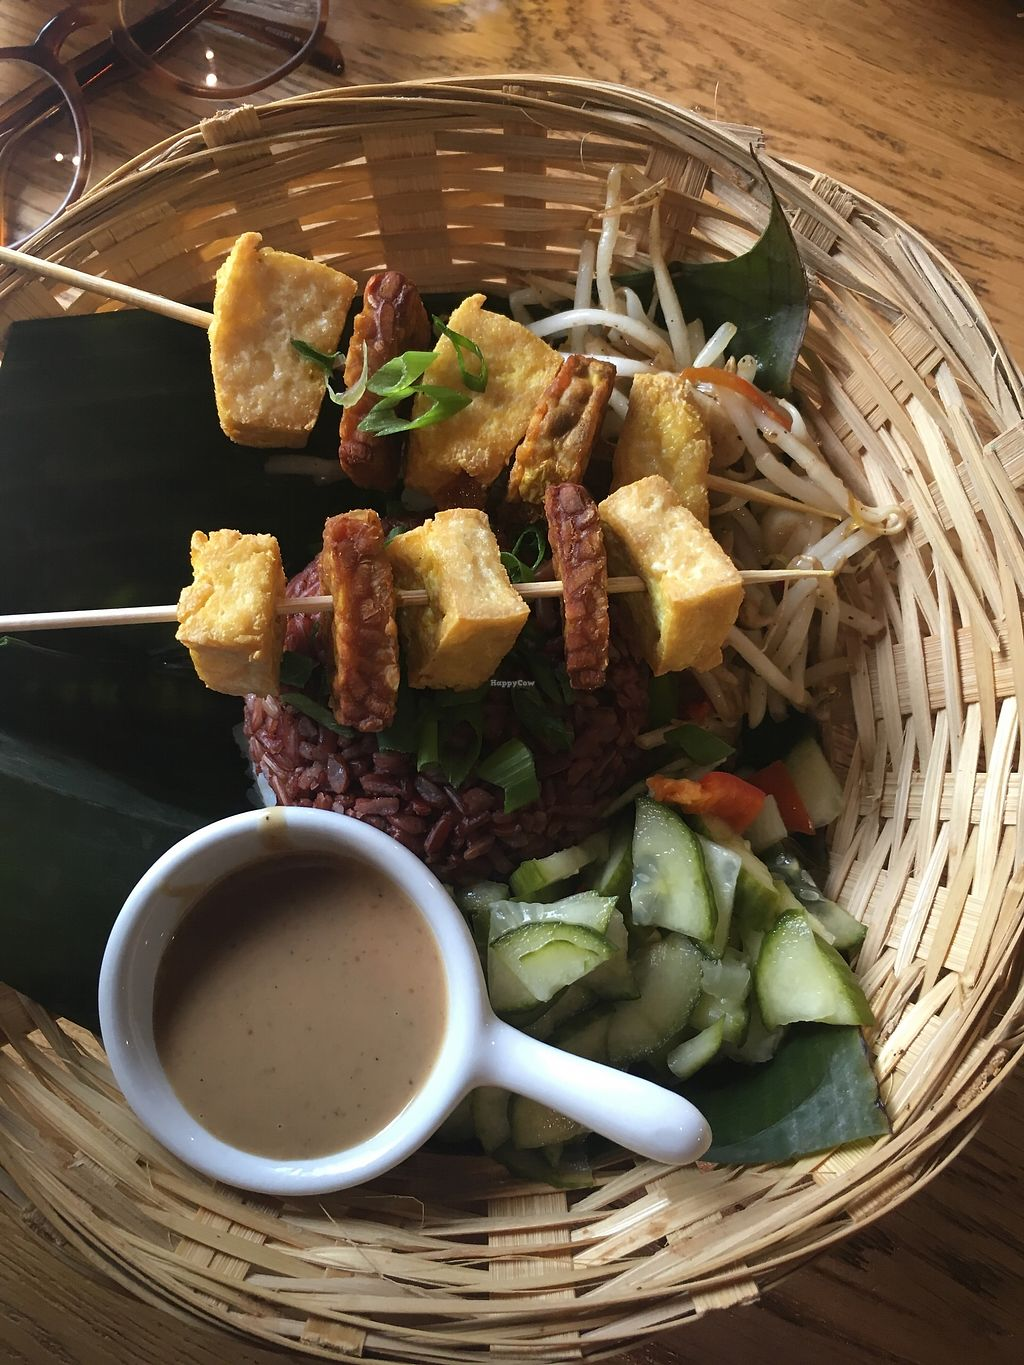 """Photo of Warung Jakarta  by <a href=""""/members/profile/LivvyCropper"""">LivvyCropper</a> <br/>Vegan satay  <br/> October 9, 2017  - <a href='/contact/abuse/image/91724/313630'>Report</a>"""